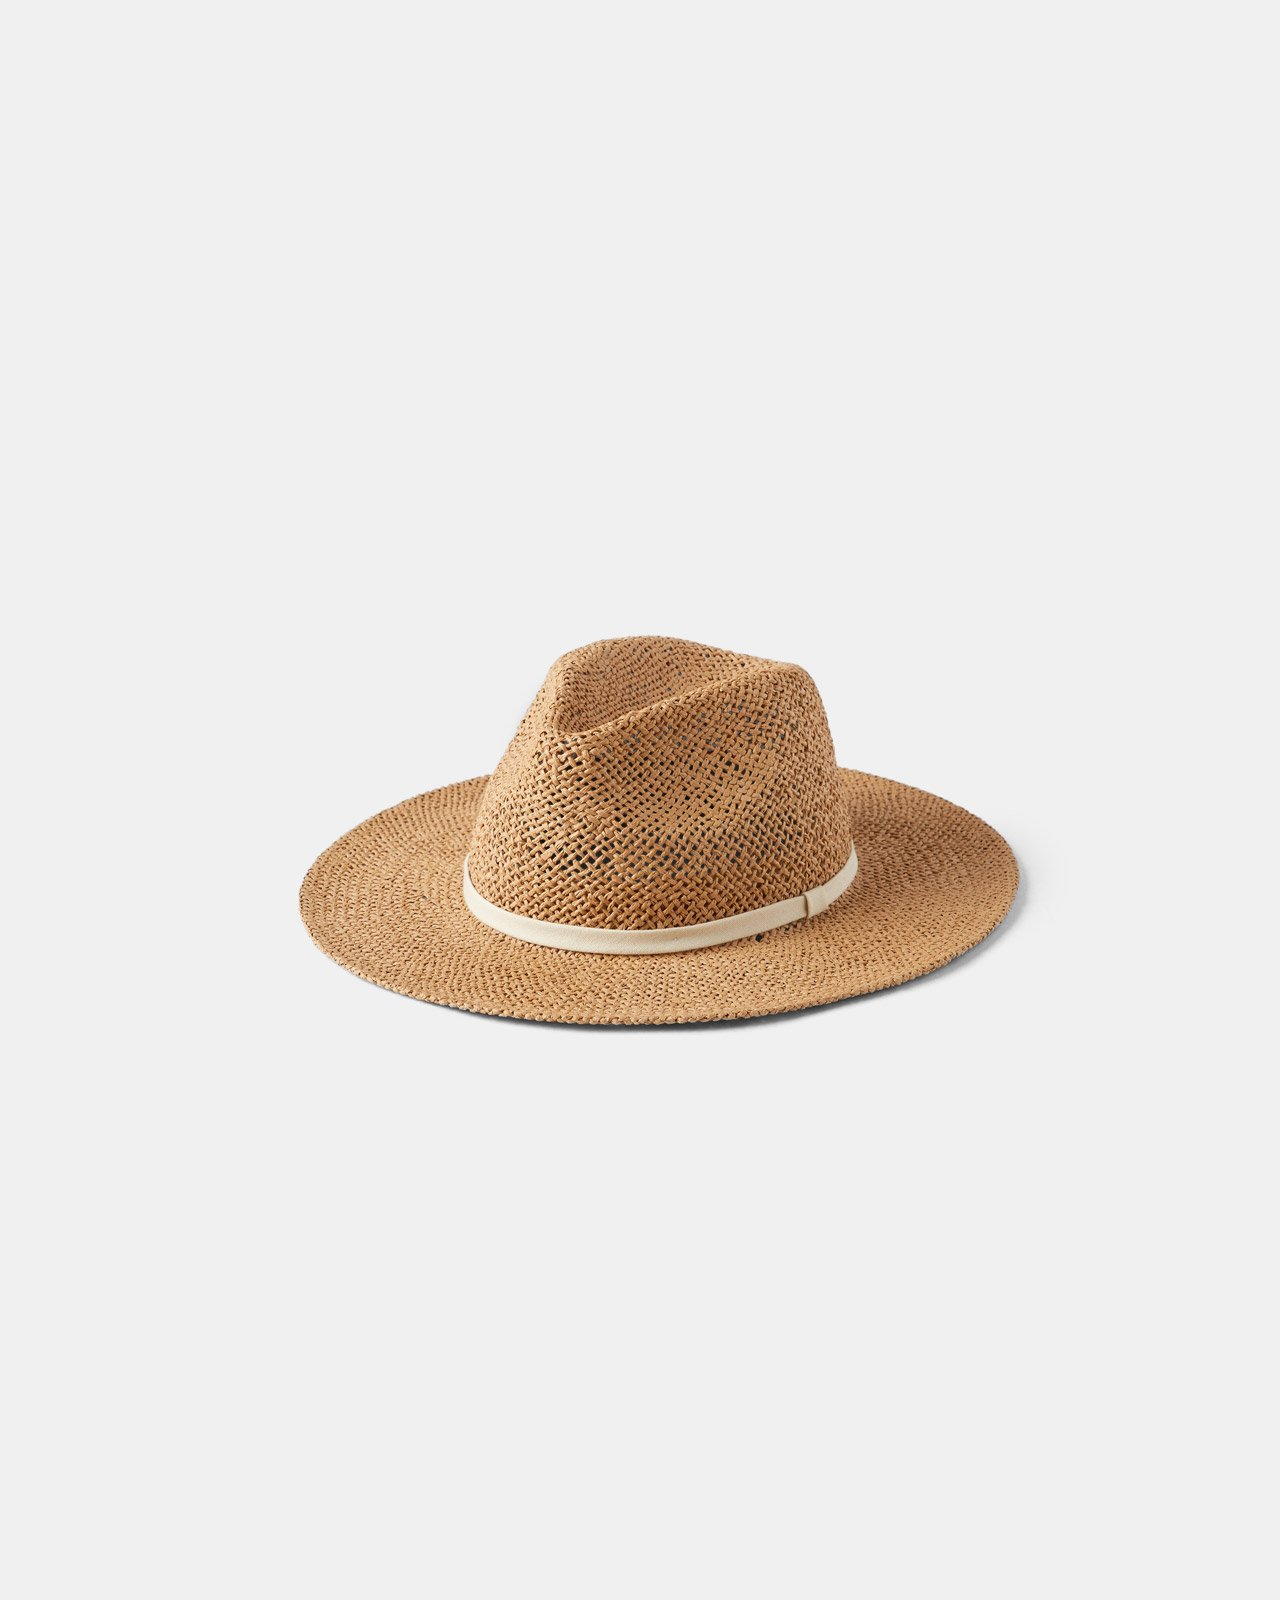 will-and-bear-yorke-sand-straw-hat-1.jpg